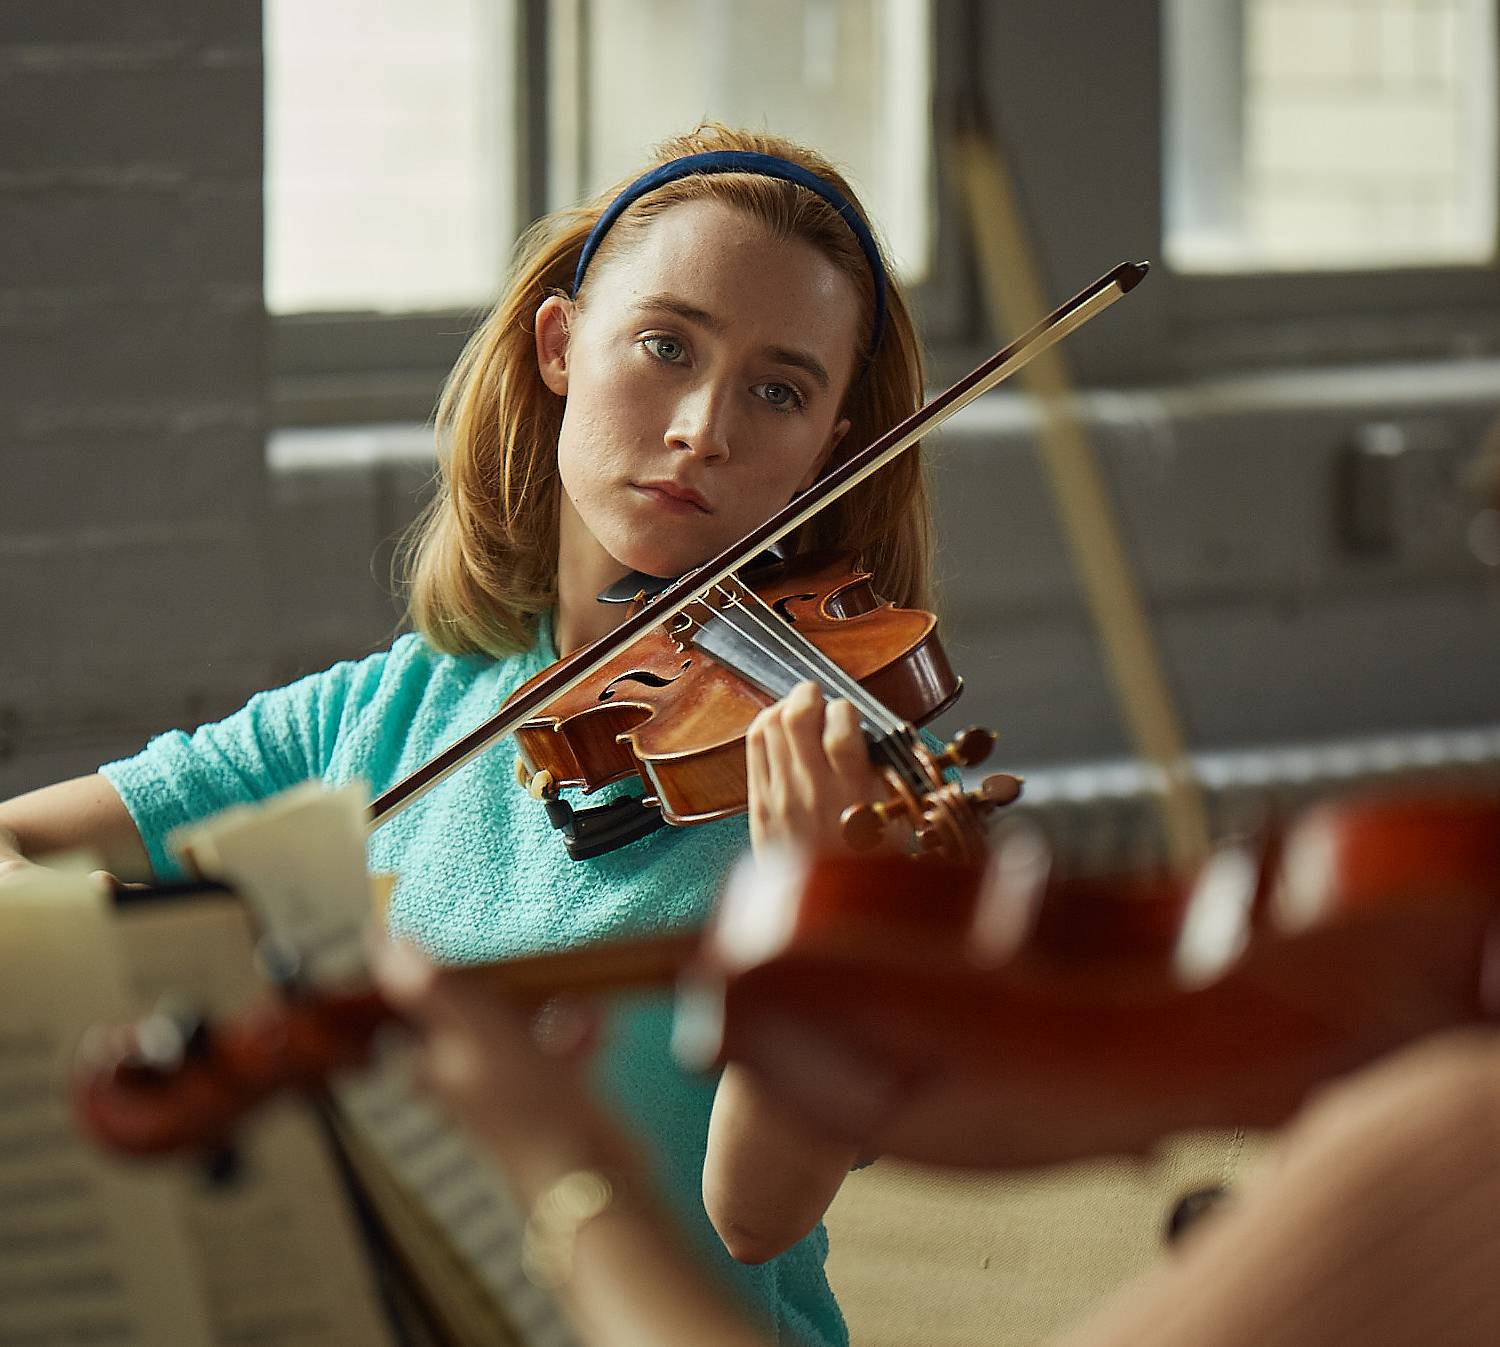 Saoirse Ronan the violin - Saoirse Ronan Net Worth, Movies, Family, Boyfriend, Pictures and Wallpapers